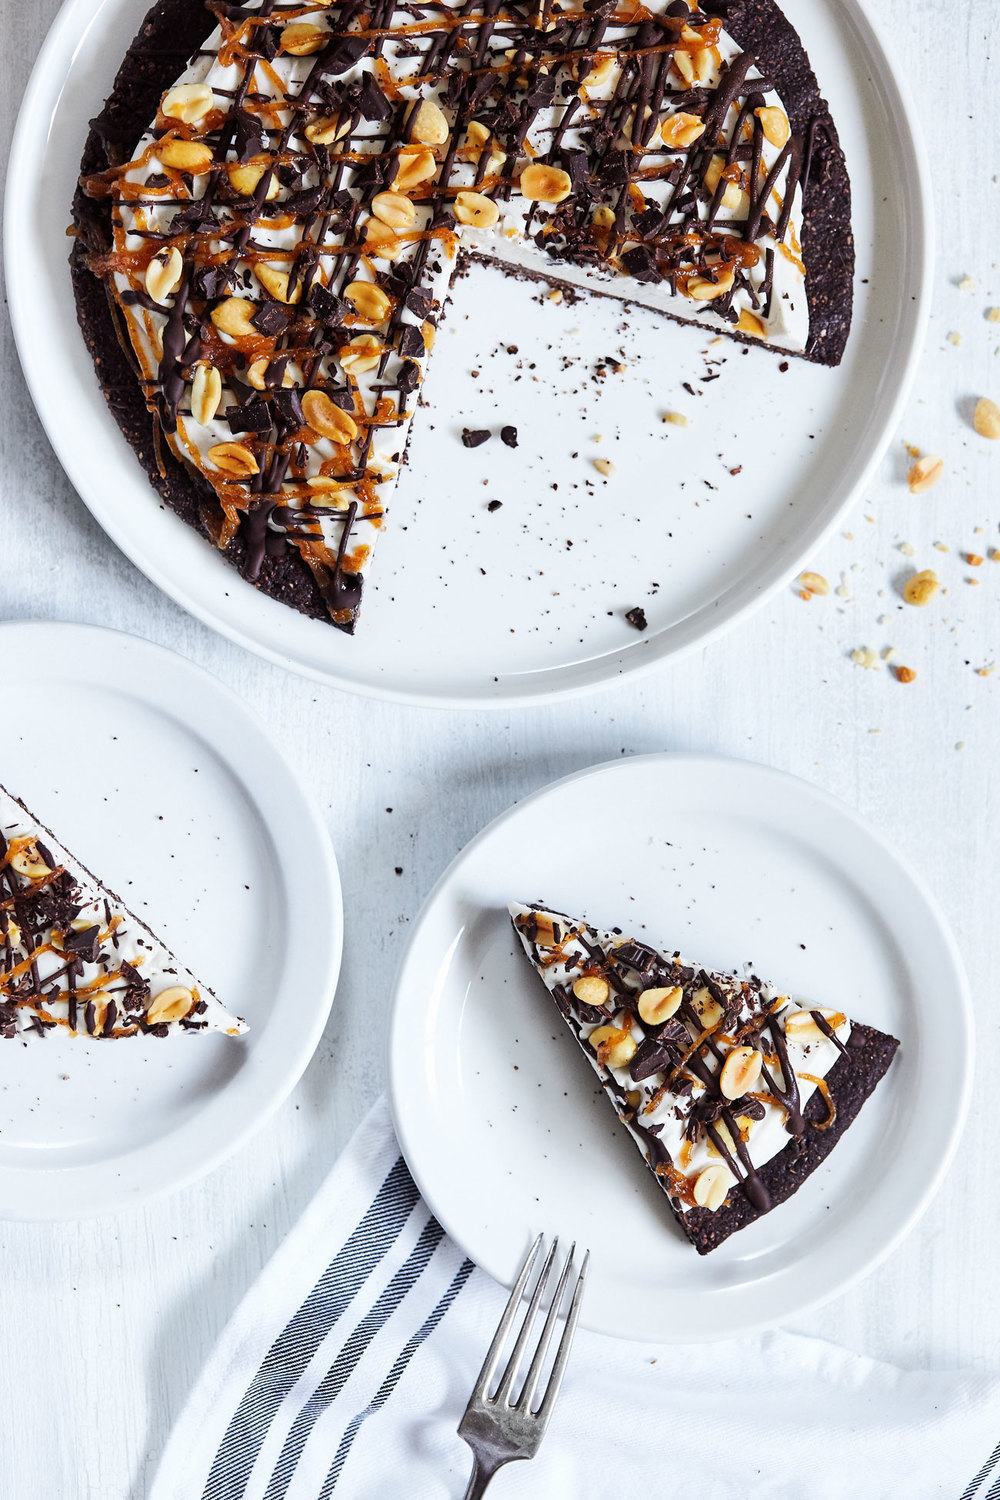 Chocolate Caramel Ice Cream Pizza // Natural Girl Modern World // Vegan & Gluten Free